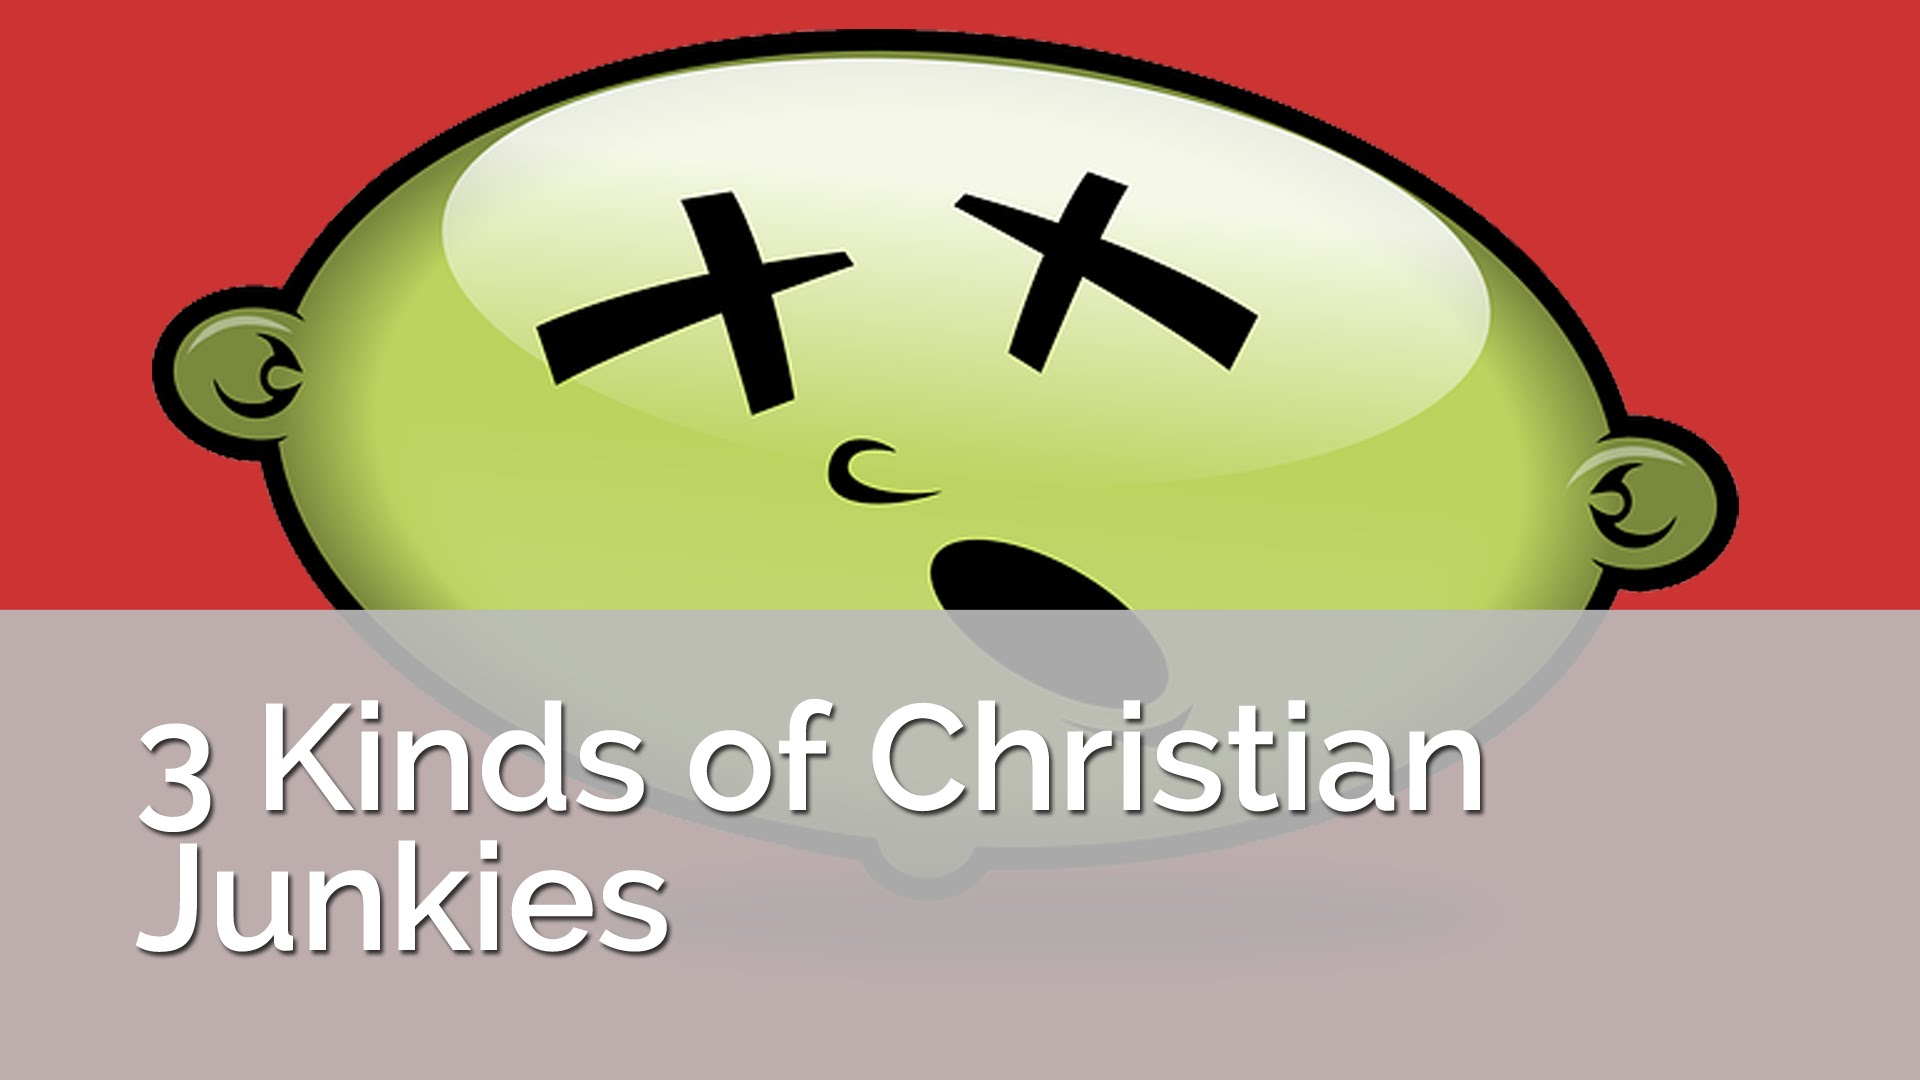 3 Types of Christian Junkies